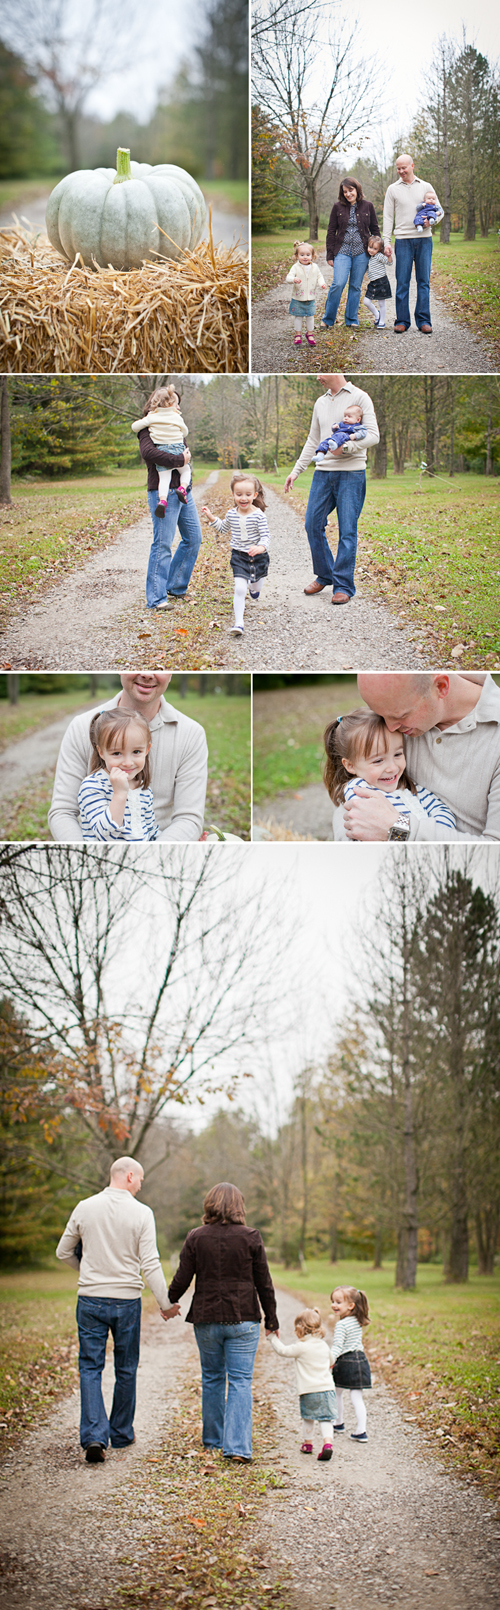 Ohio Family Portraits